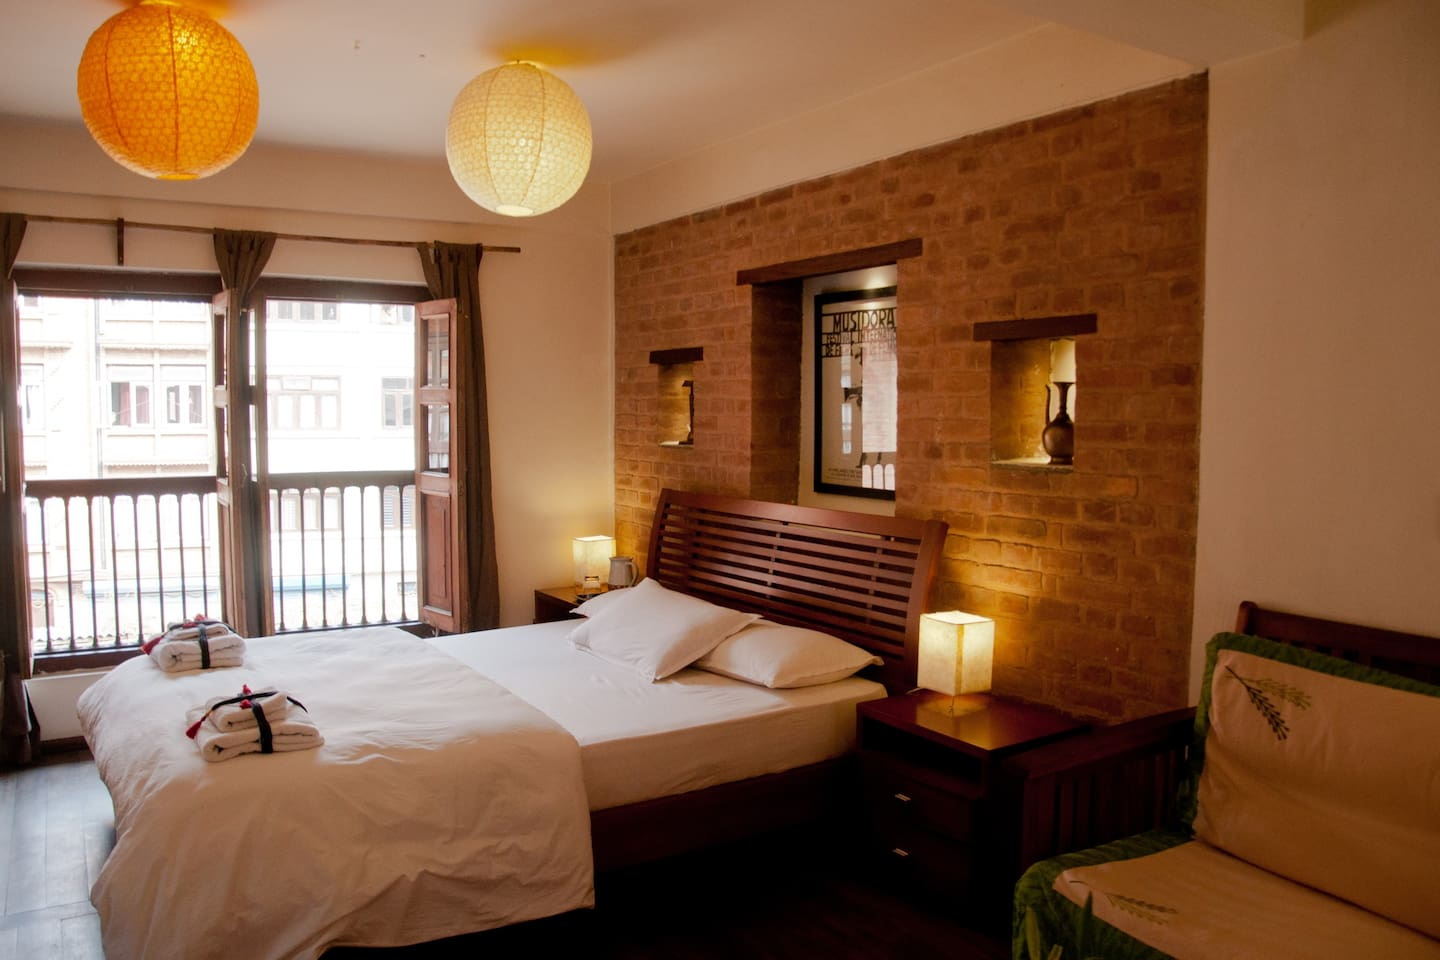 Spacious bedroom with king-bed and  view over a courtyard.